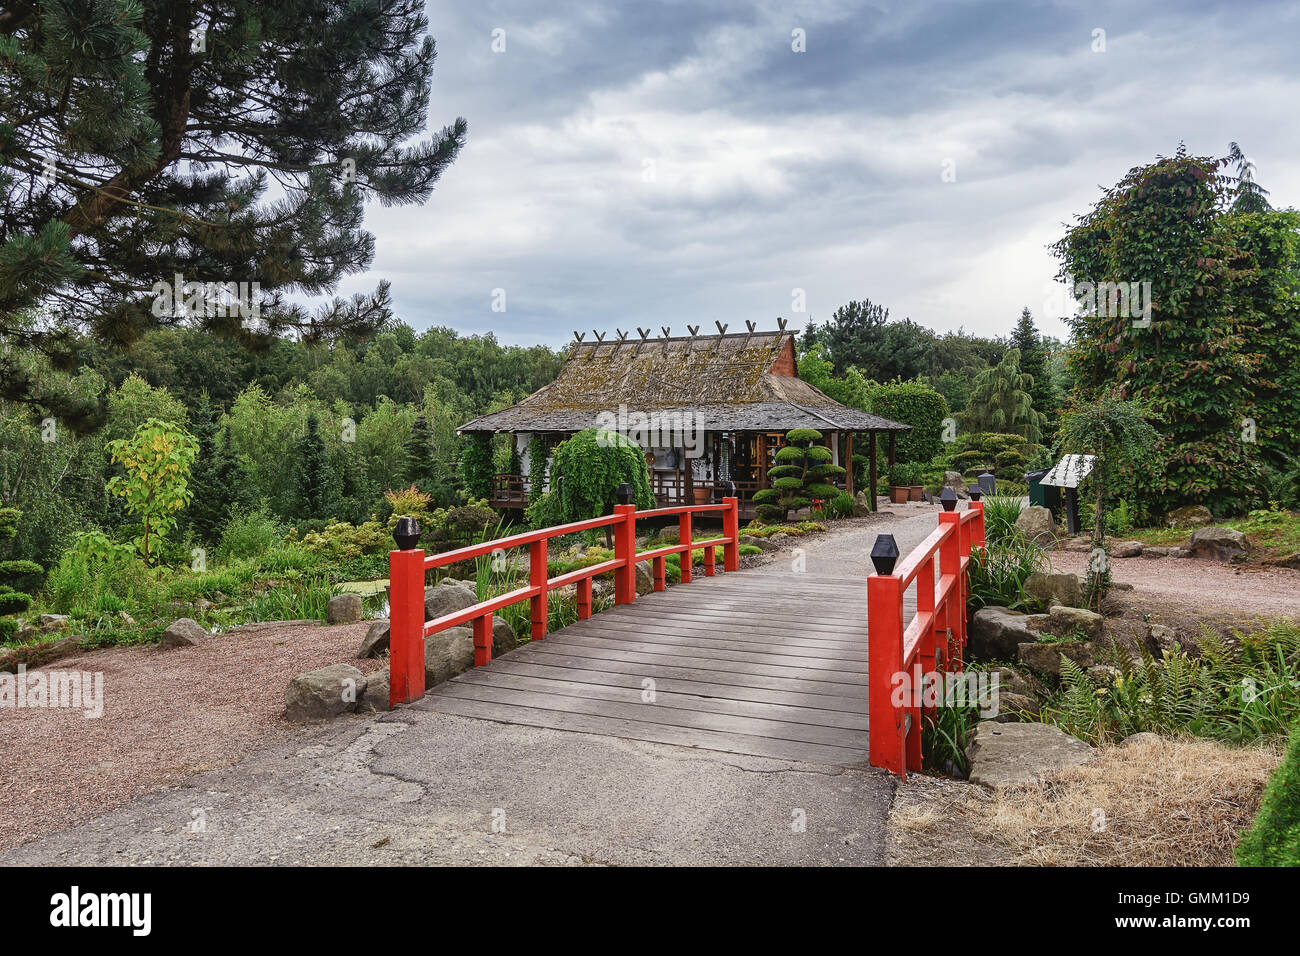 garden park teahouse stockfotos garden park teahouse bilder alamy. Black Bedroom Furniture Sets. Home Design Ideas